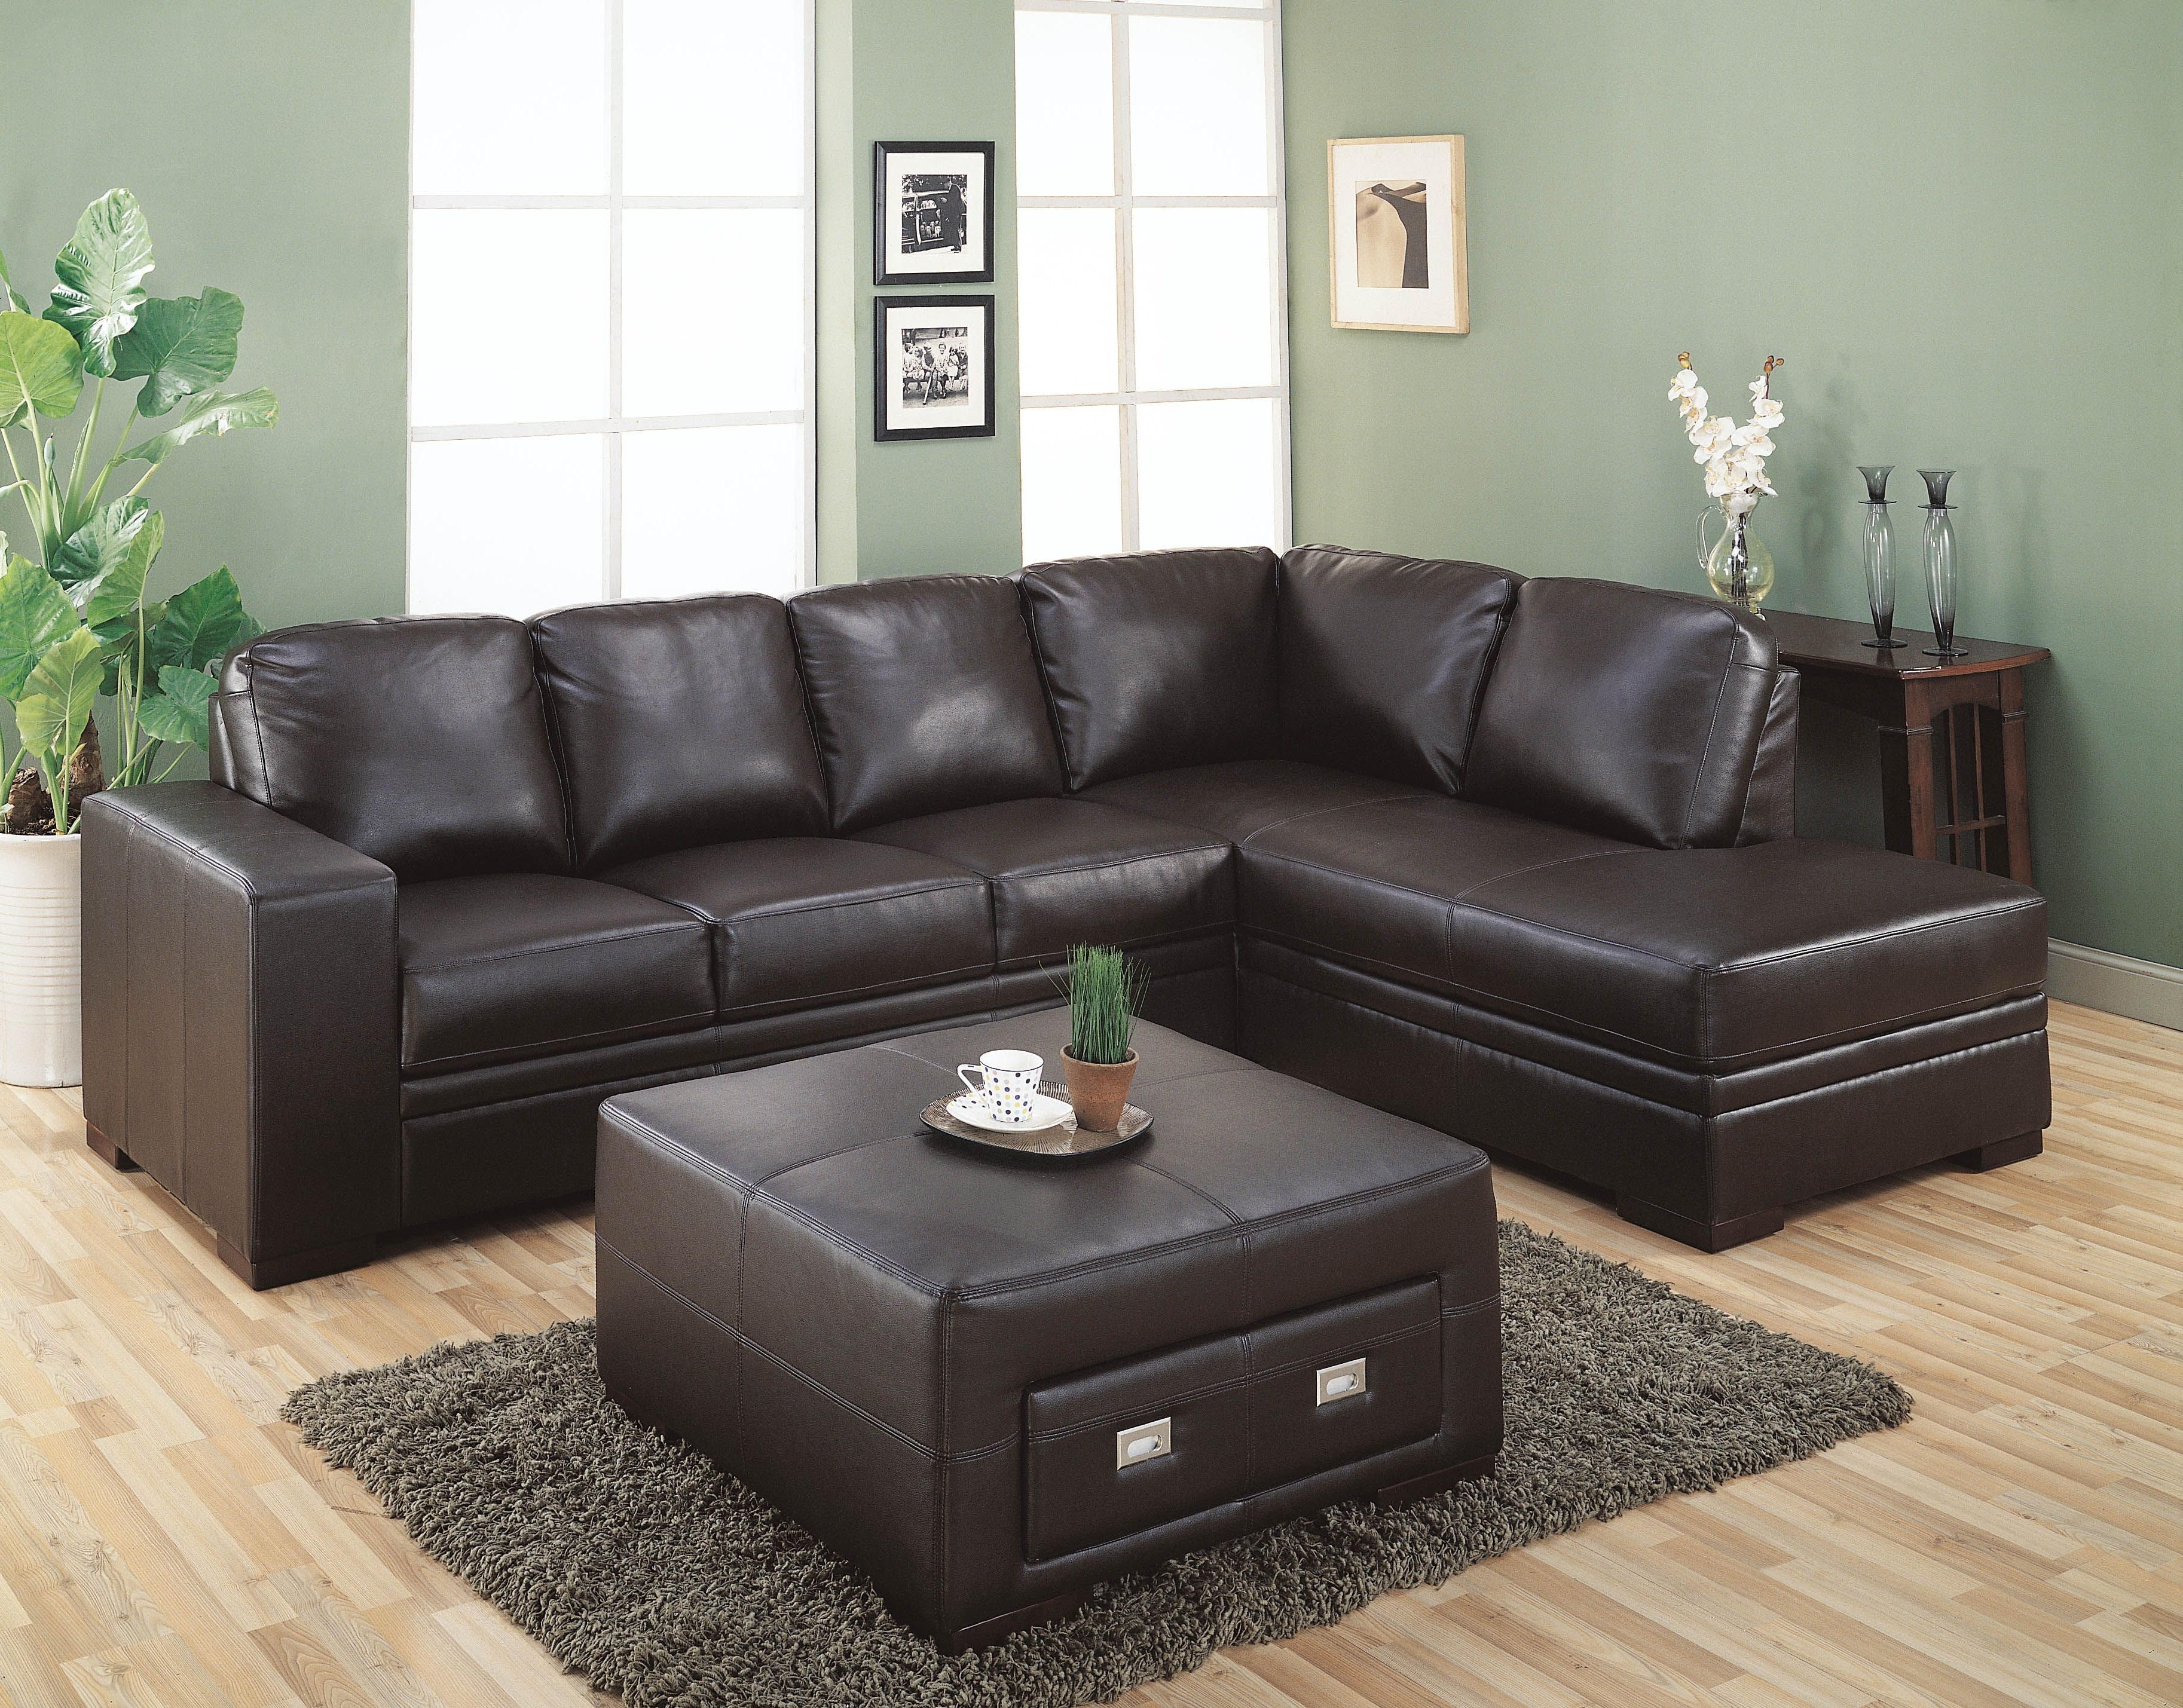 2018 Leather Sofas With Storage Intended For Very Popular Sectional Dark Brown Leather Couch With Square (View 2 of 15)